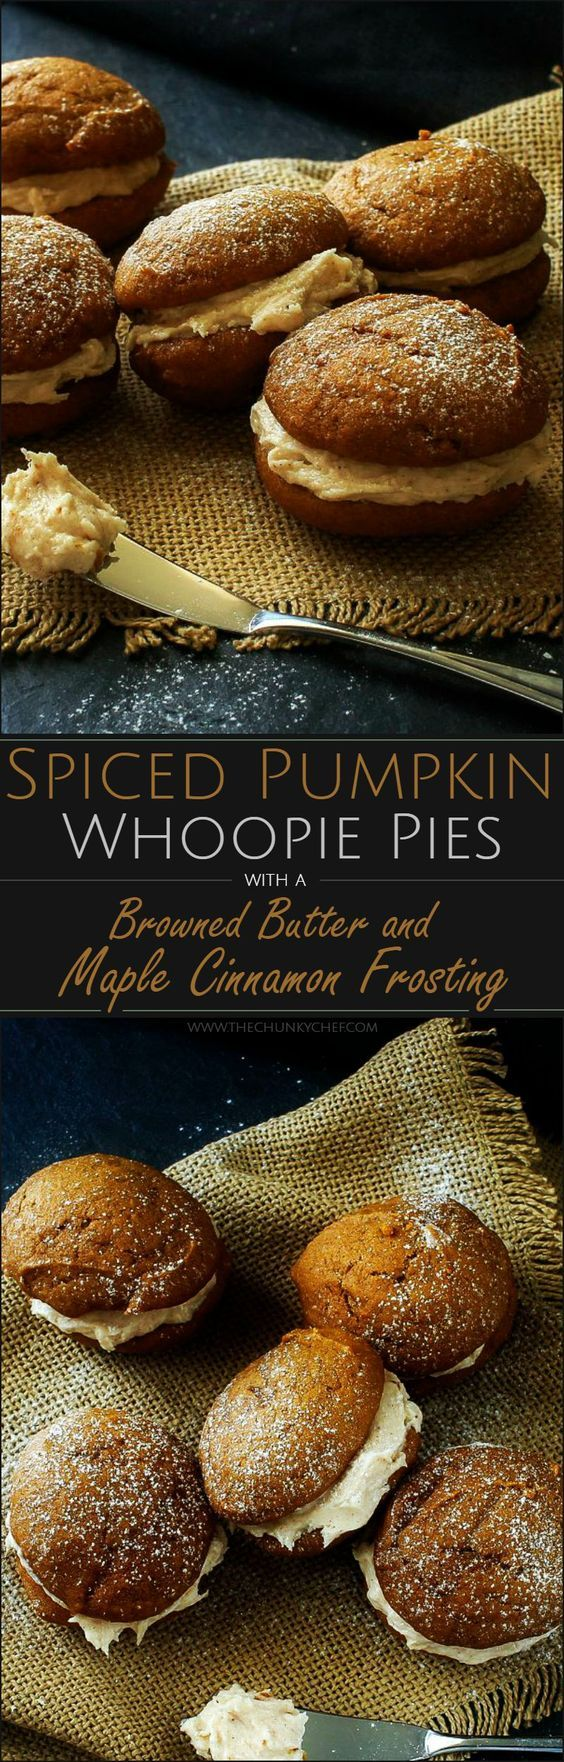 (49) Spiced Pumpkin Whoopie Pies with Browned Butter Maple Cinnamon Frosting | Recipe